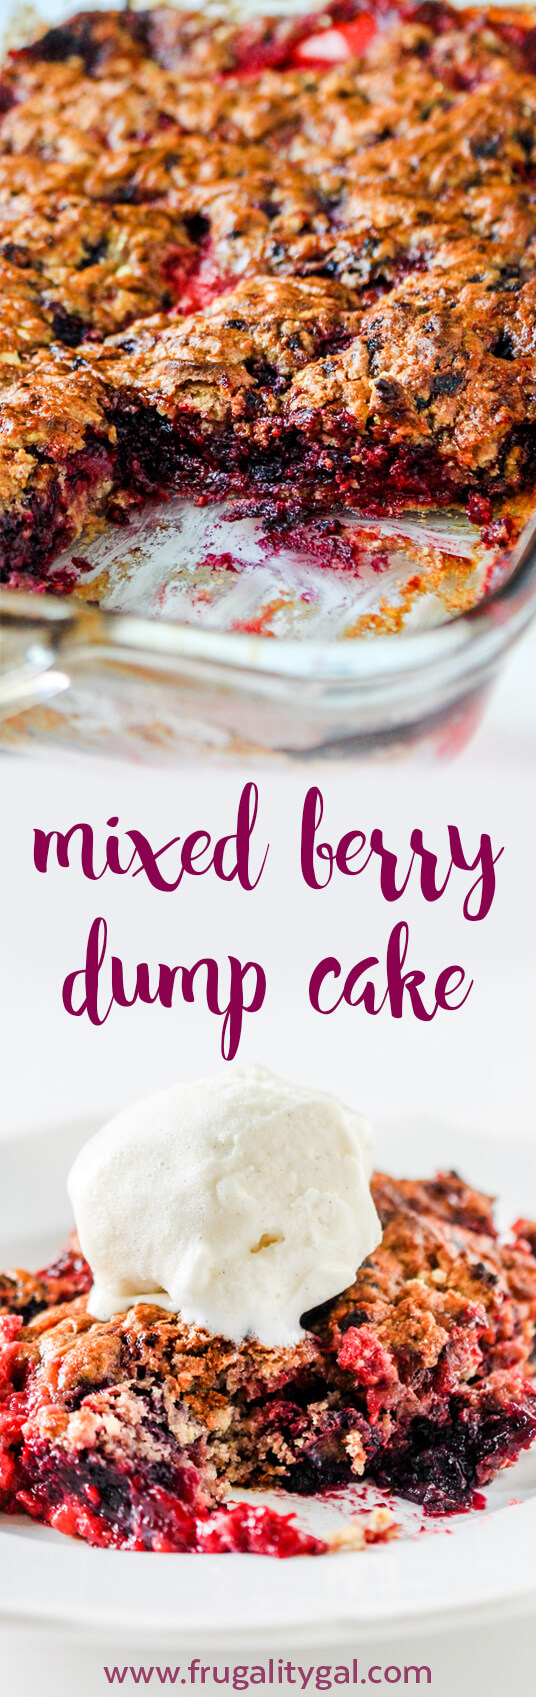 Mixed Berry Dump Cake Recipe